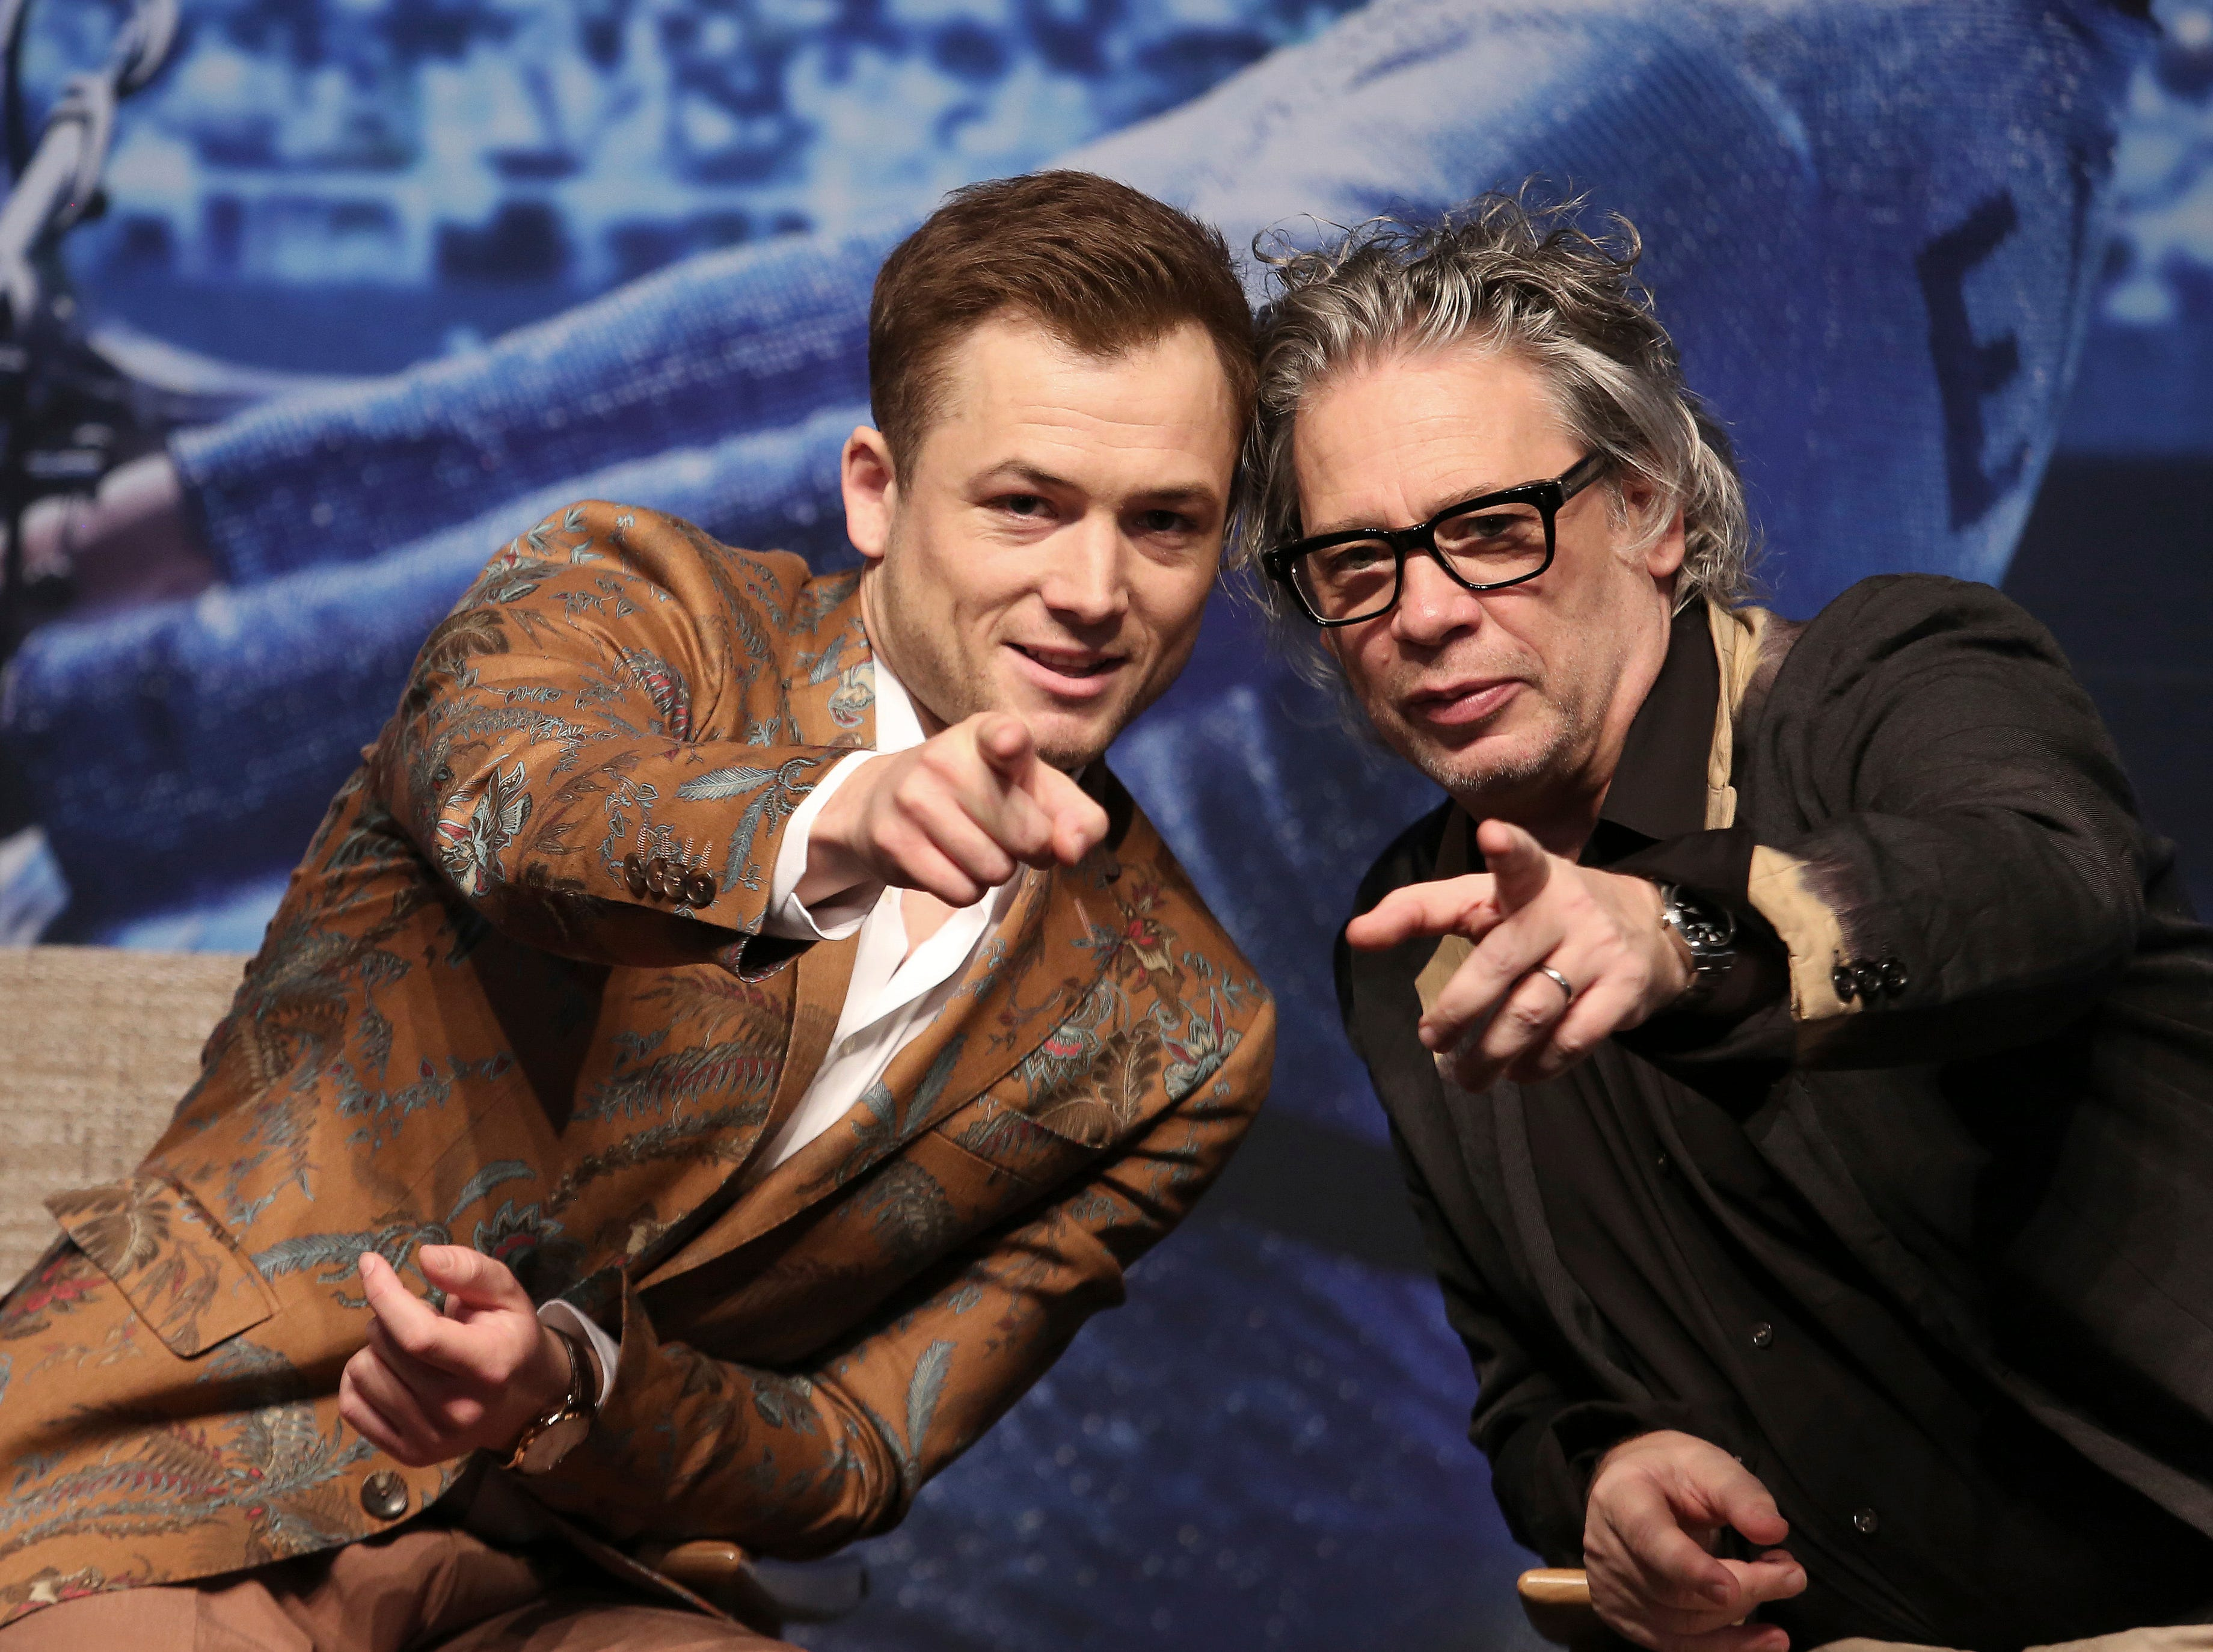 """Actor Taron Egerton, left, and director Dexter Fletcher gesture during a press conference to promote their latest movie """"Rocketman"""" in Seoul, South Korea, Thursday, May 23, 2019."""